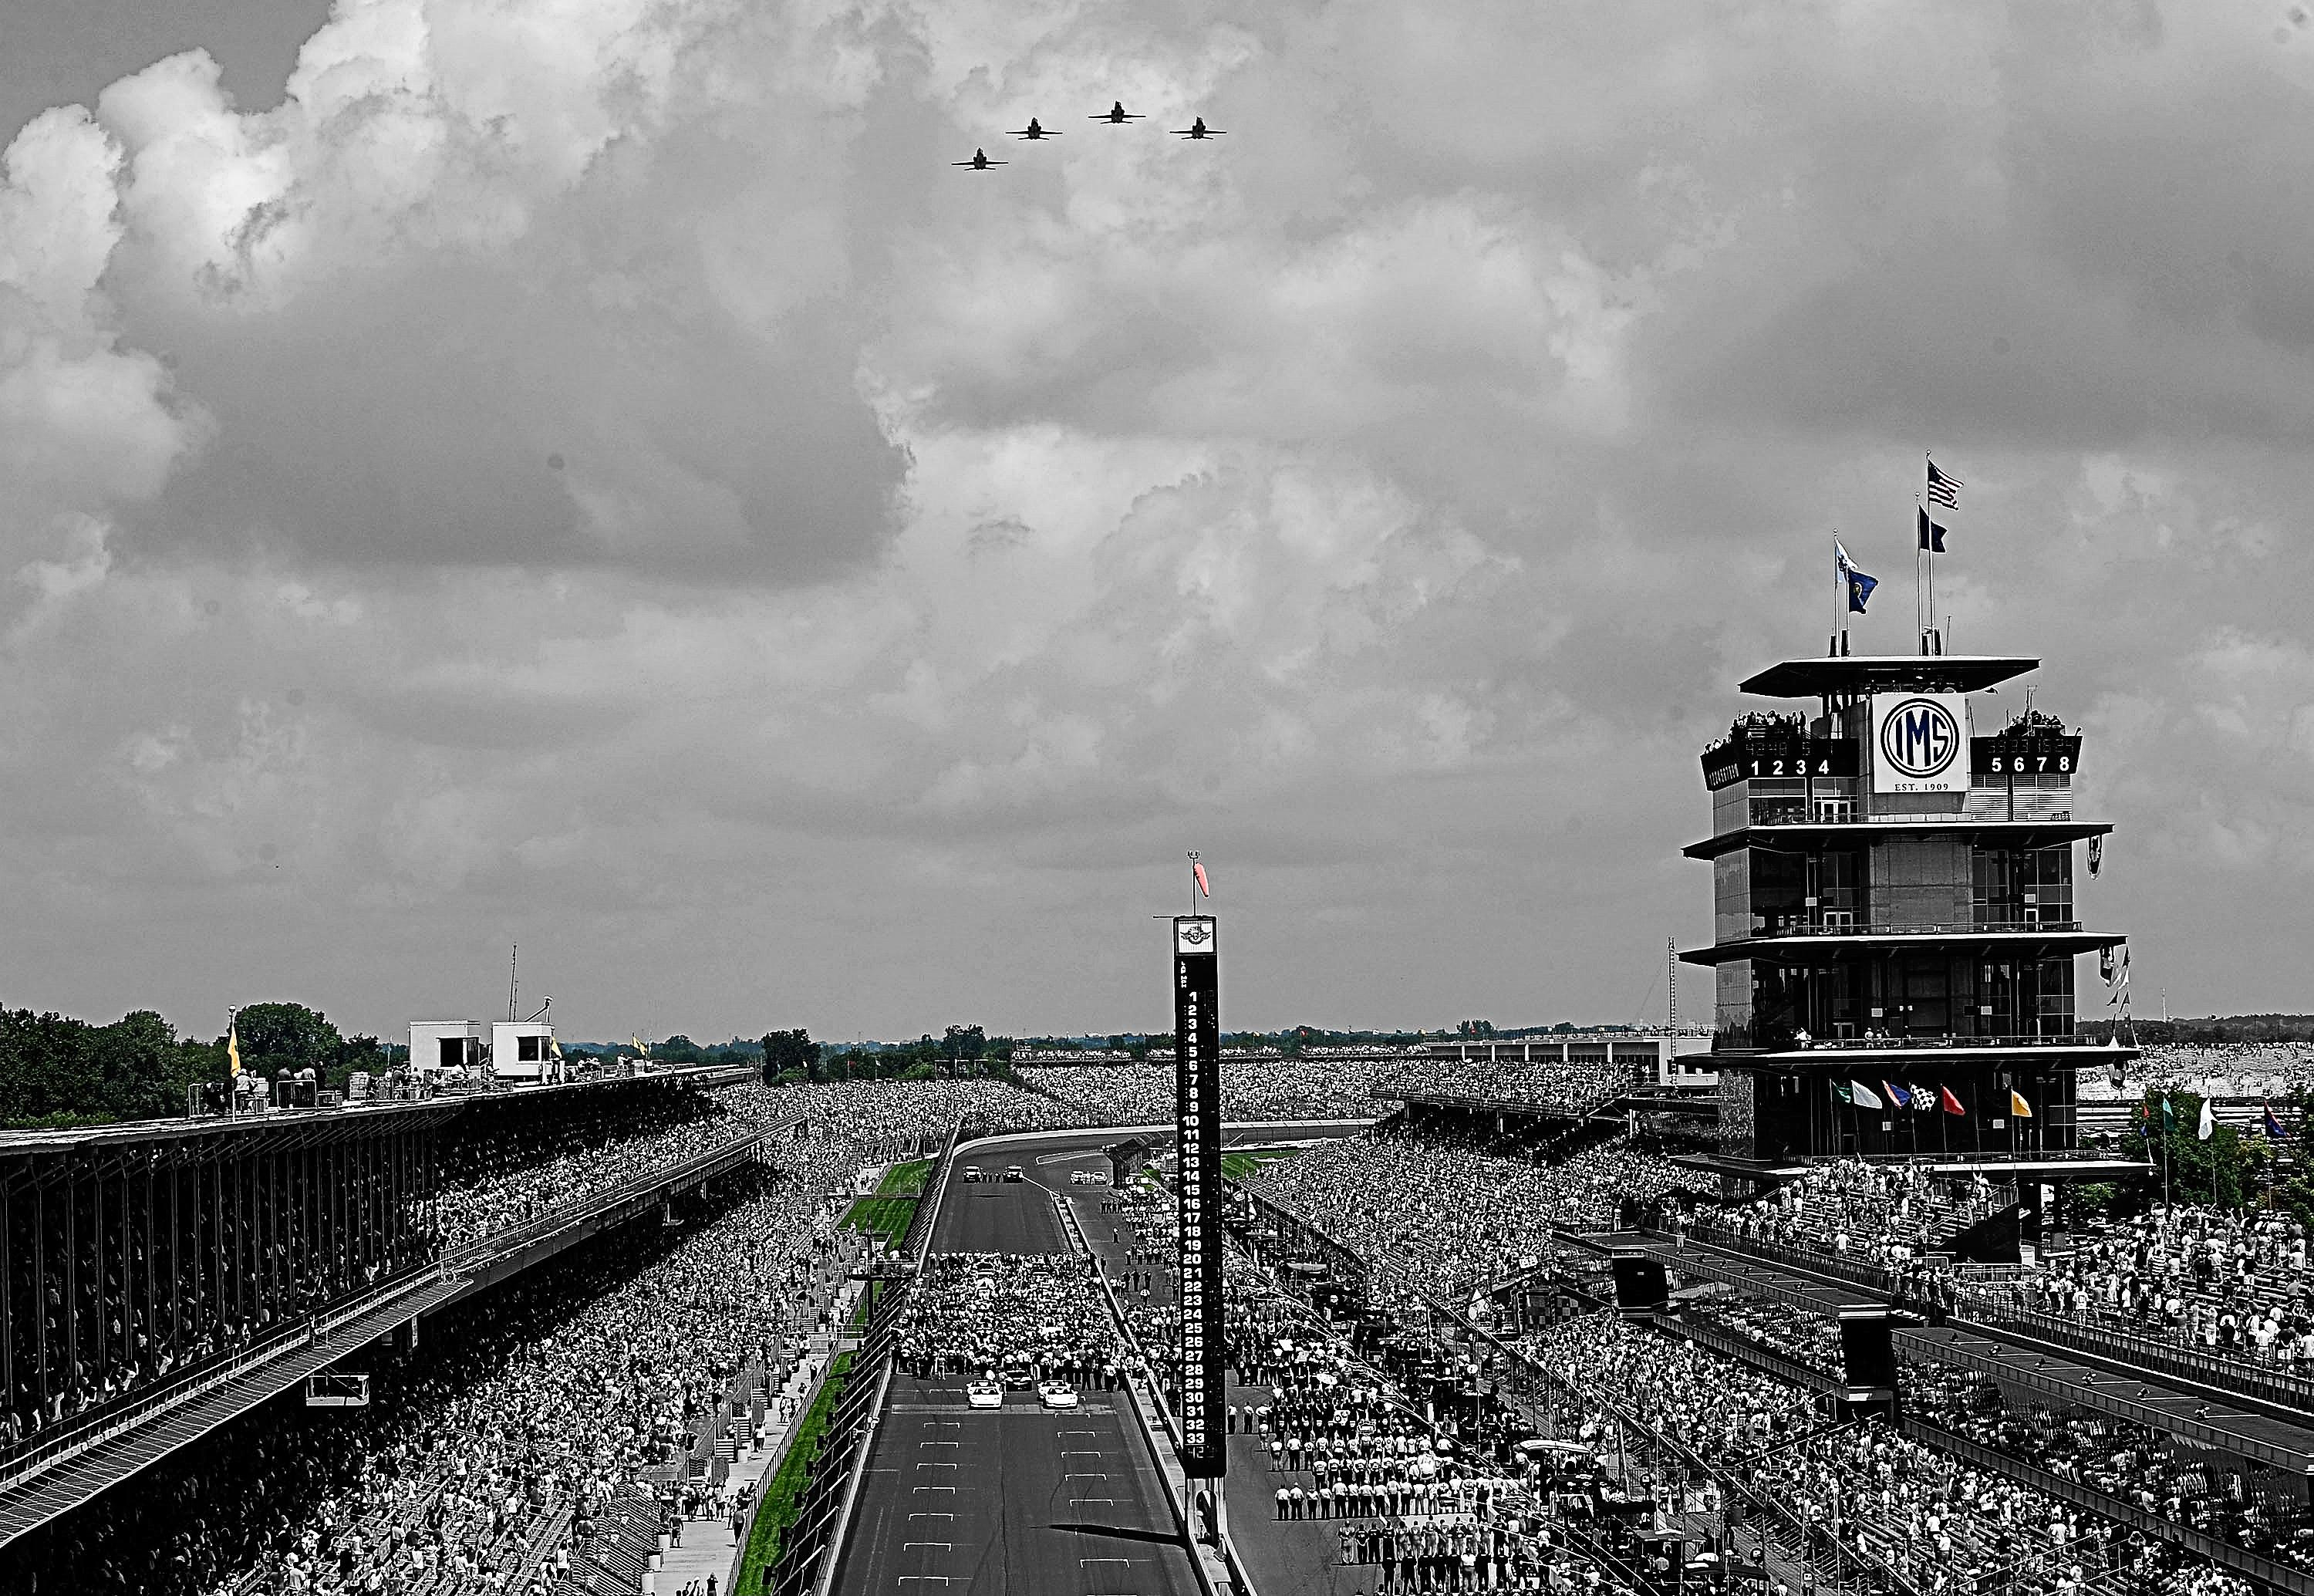 The Indianapolis Motor Speedway, located in Speedway, Indiana HD ...